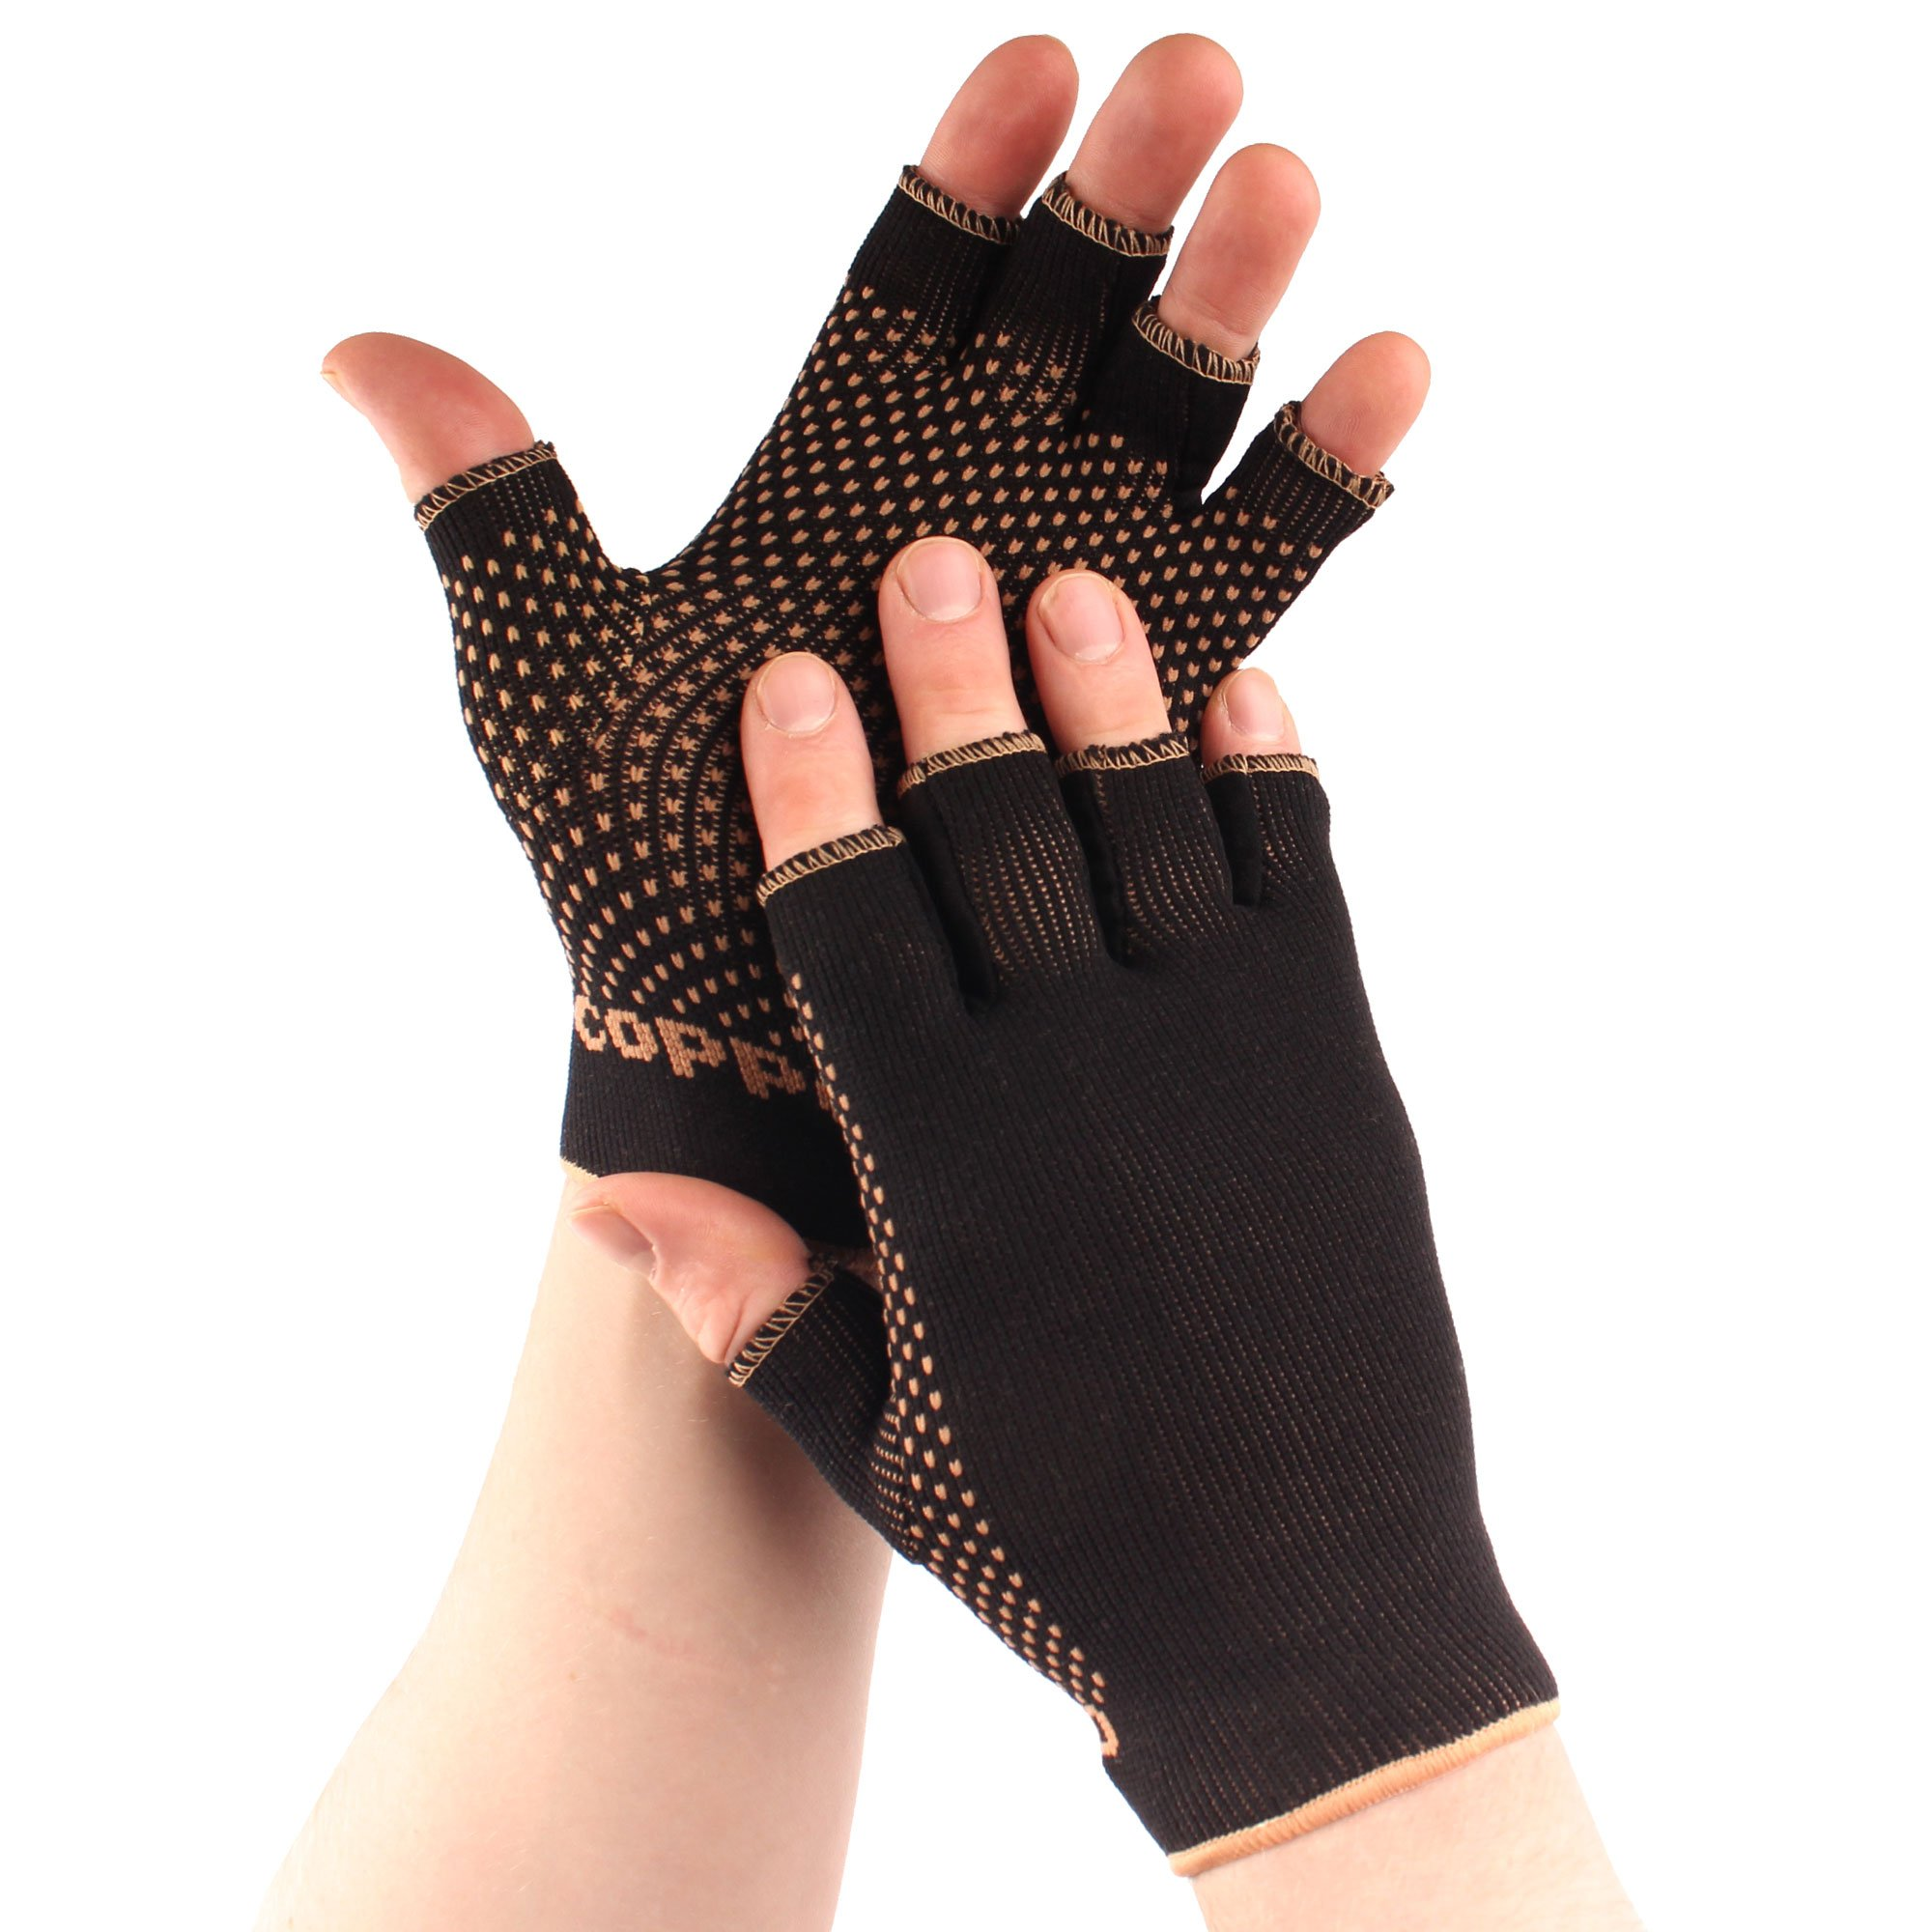 Copper D 1 Pair Black Copper Rayon from Bamboo Copper Compression Gloves for Relief from Injuries, Arthritis, and more or Comfort Support for Every Day Uses, Large Xlarge